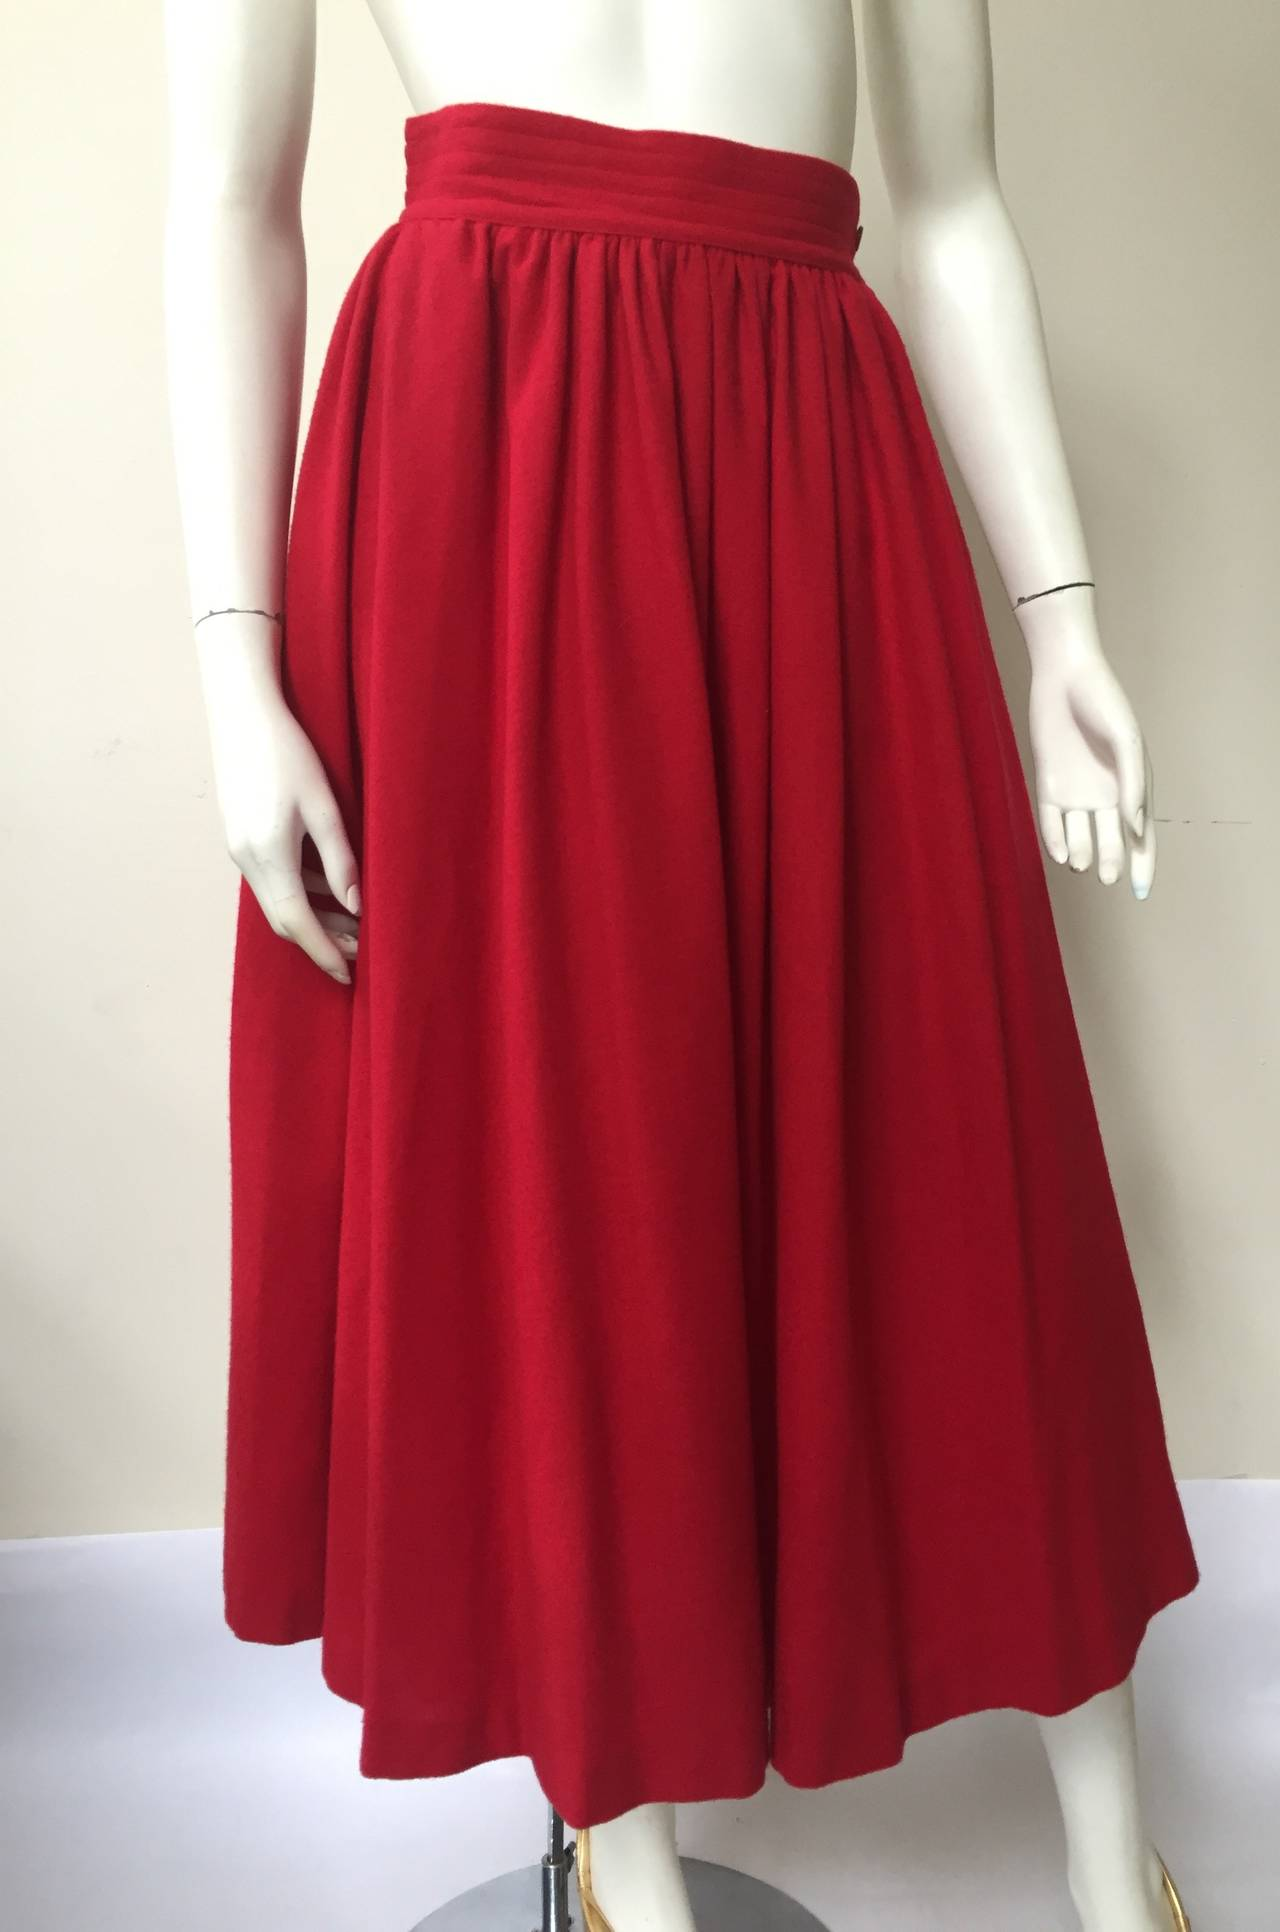 Saint Laurent Rive Gauche 70s red skirt size 4. 2